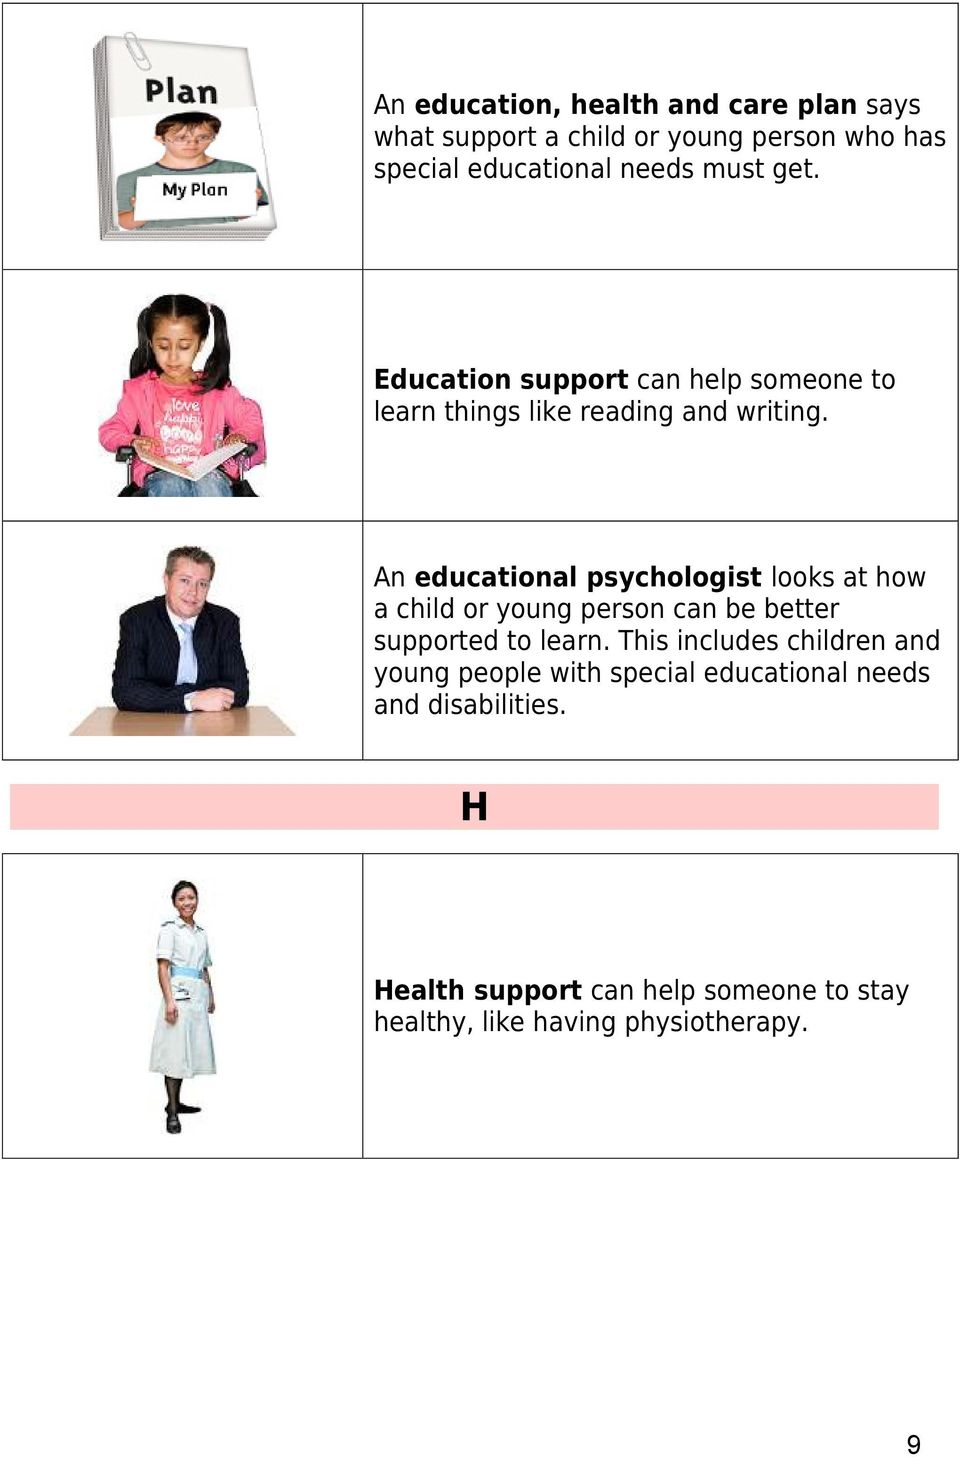 An educational psychologist looks at how a child or young person can be better supported to learn.